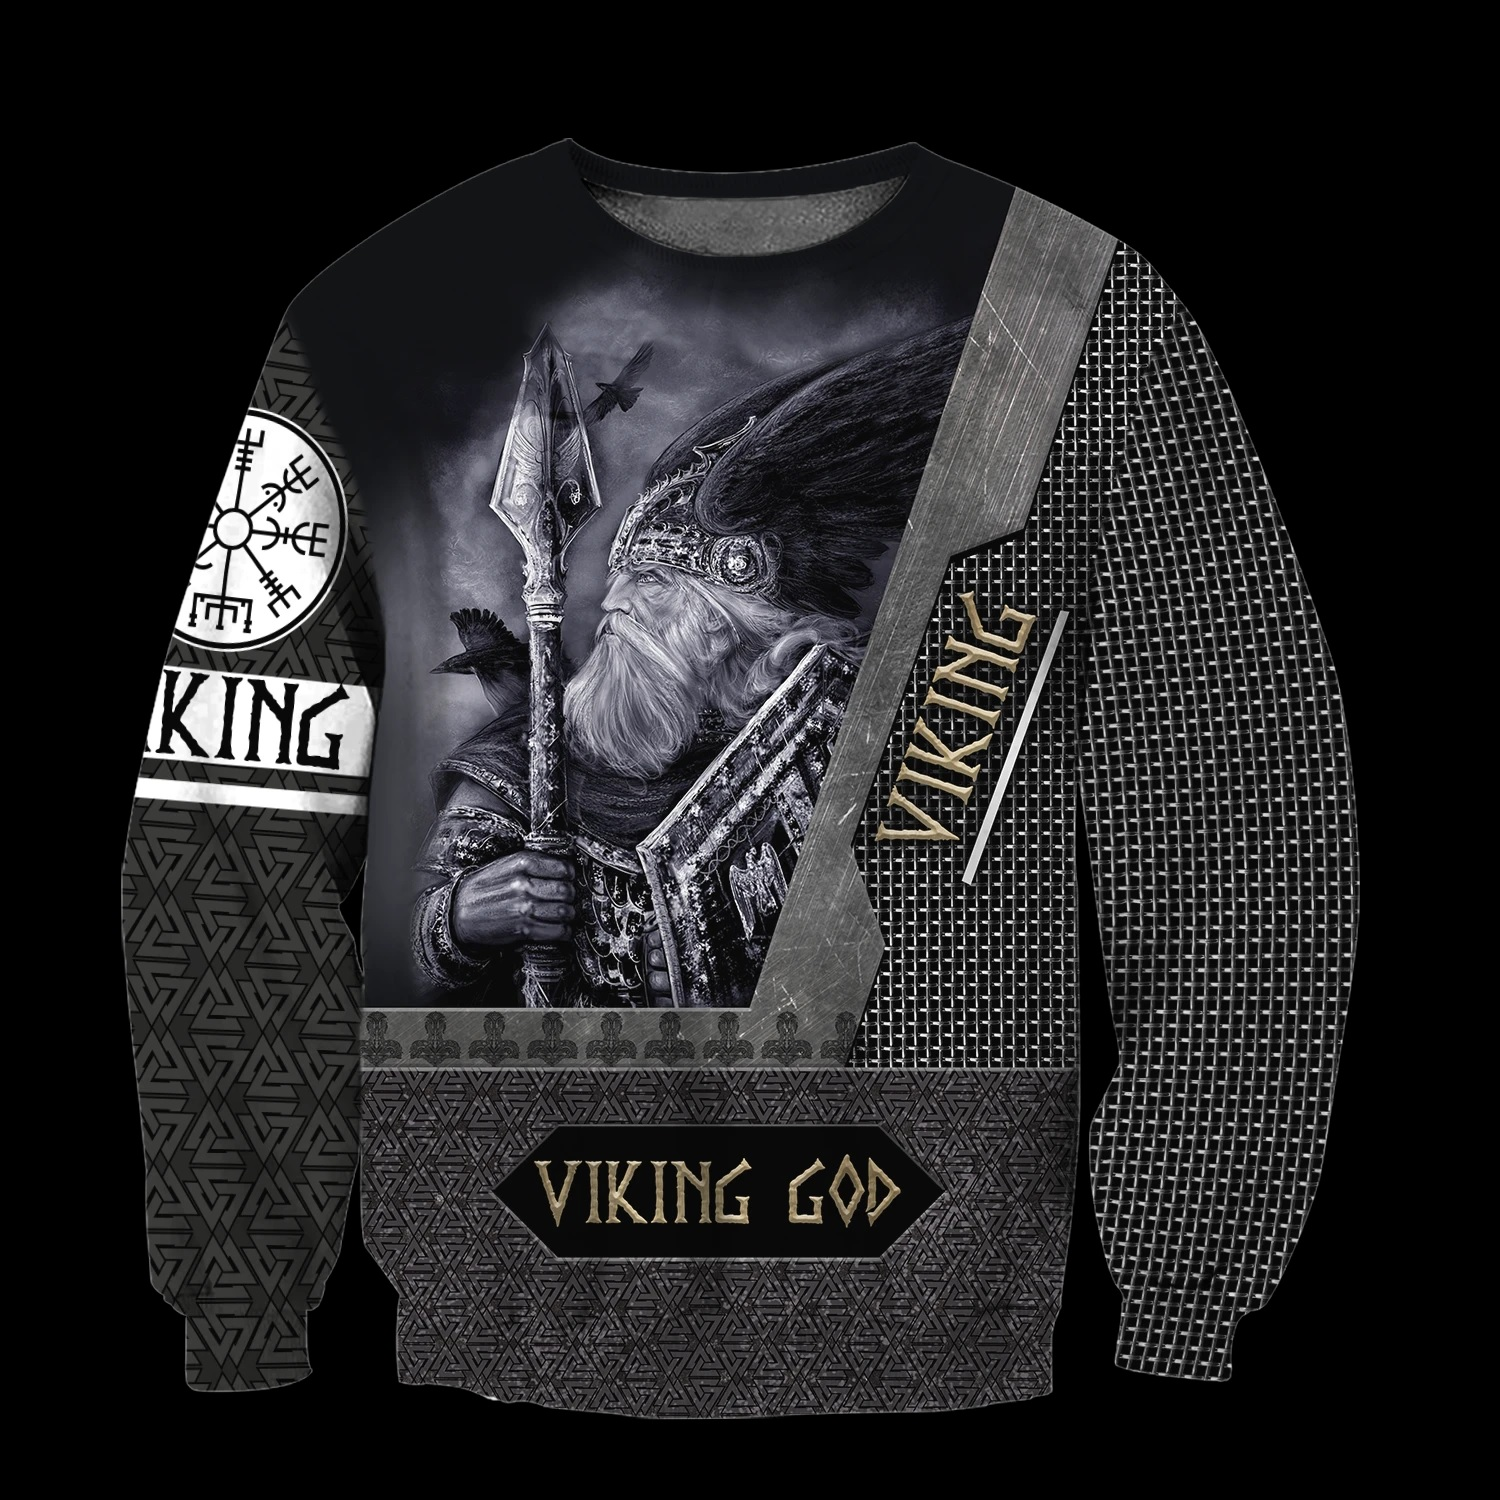 Viking God all over printed sweatshirt